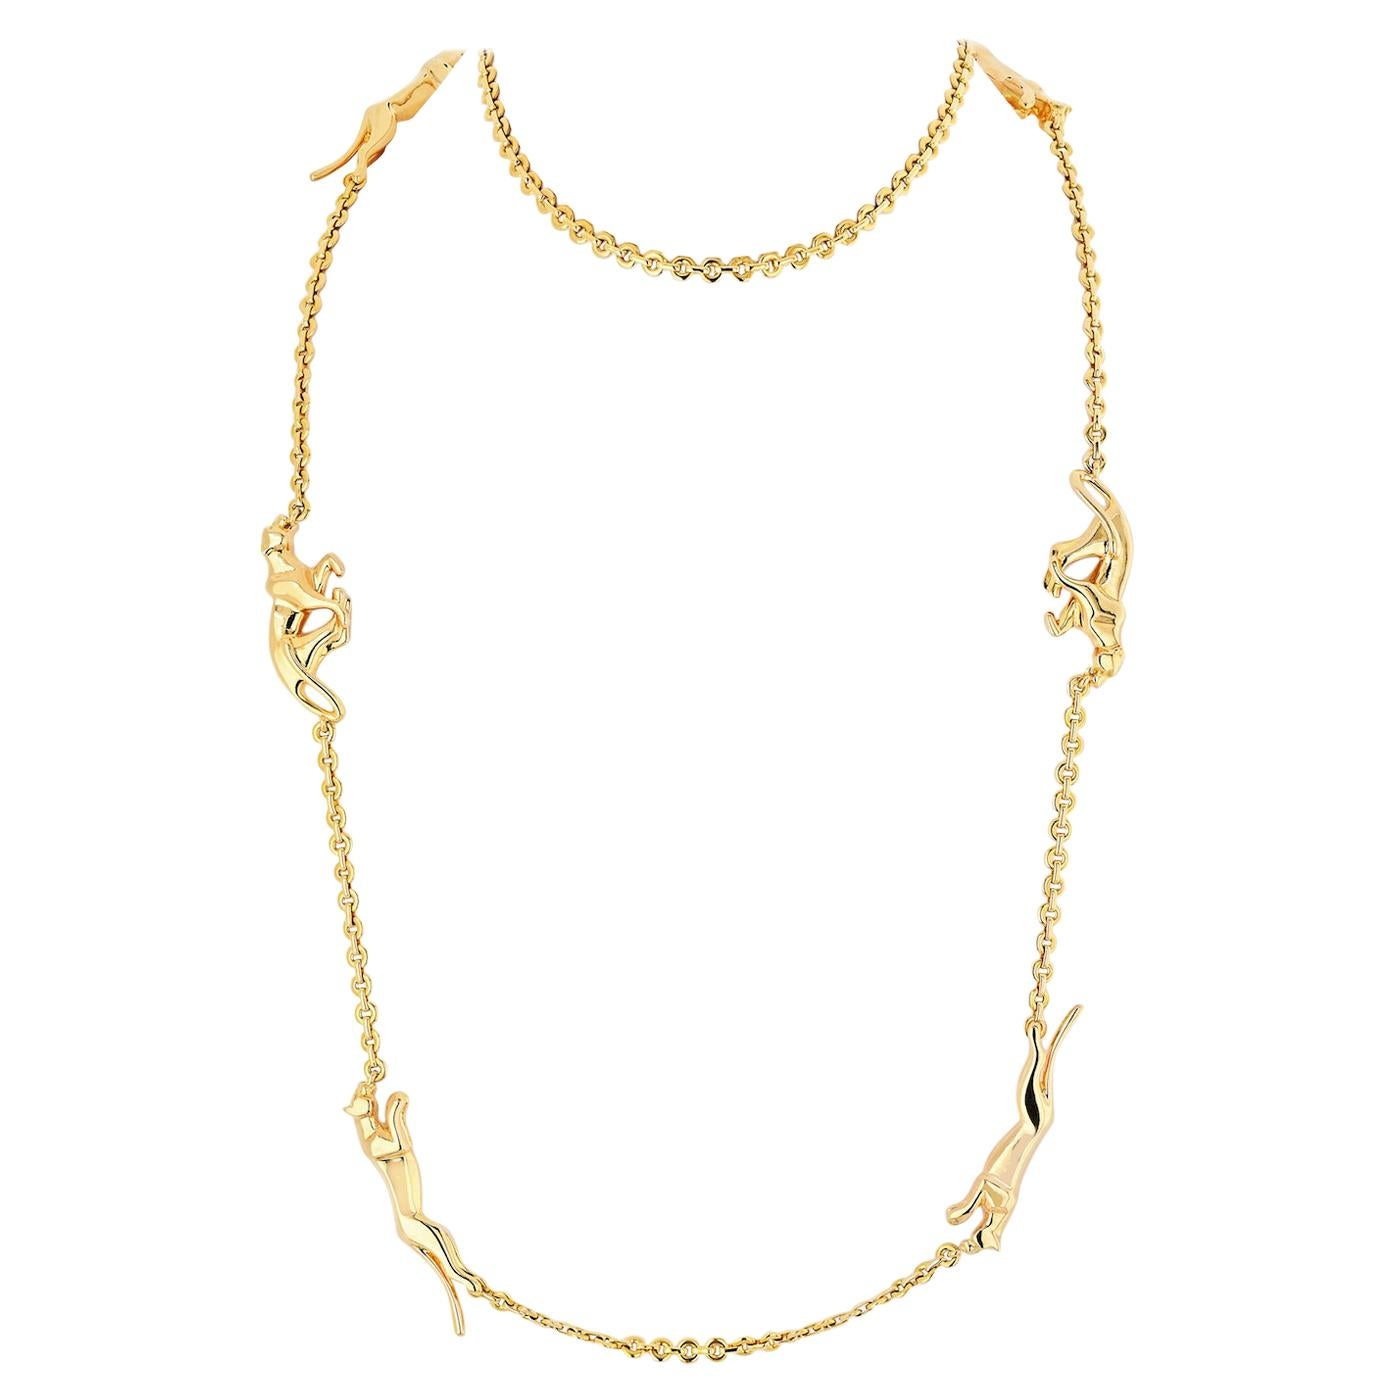 Cartier Panthere 18 Karat Yellow Gold 6 Motif Chain Necklace